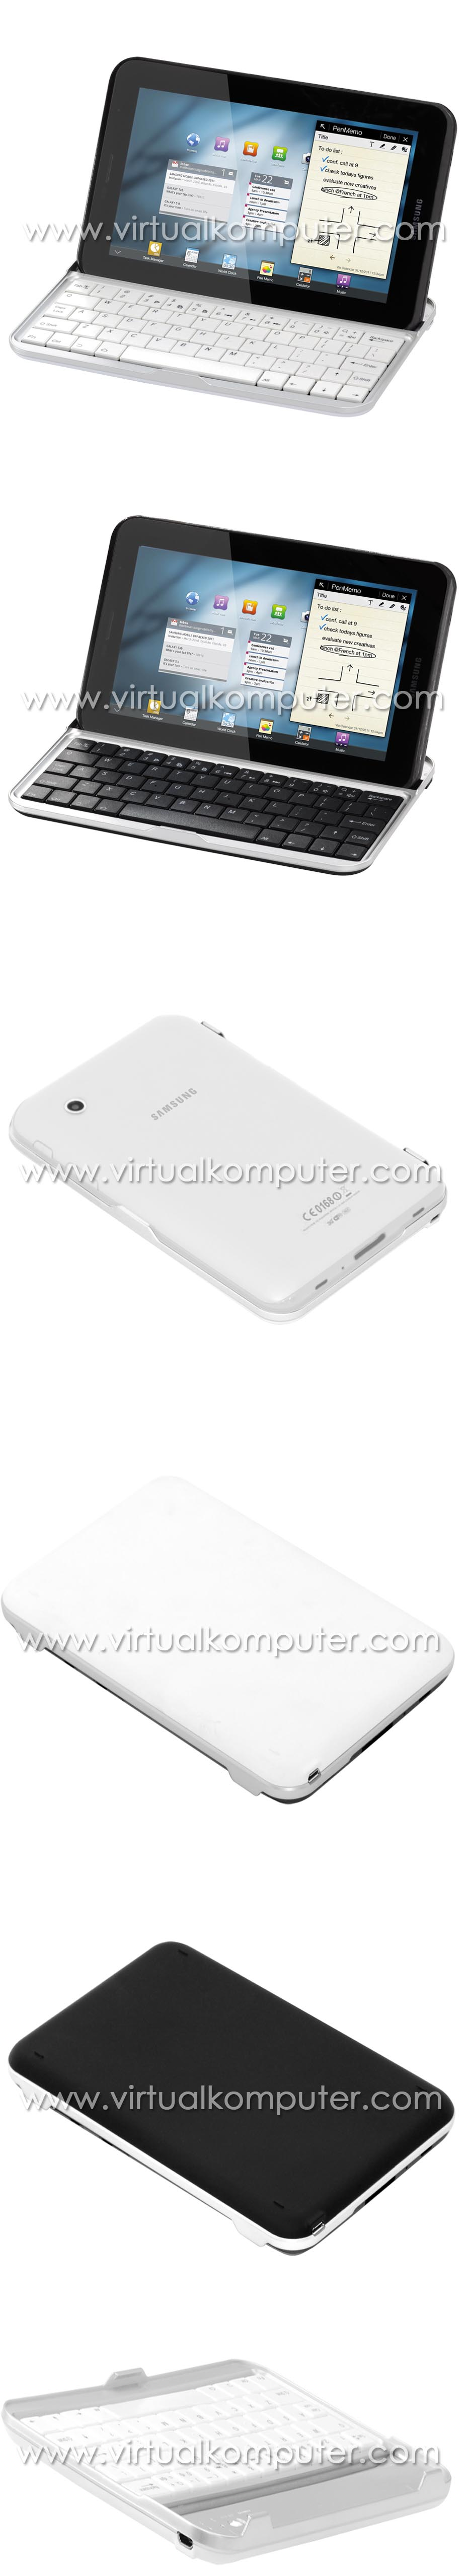 Ultra Slim Keyboard for Samsung Galaxy Tab 7.0 P3100 P6200 Overview